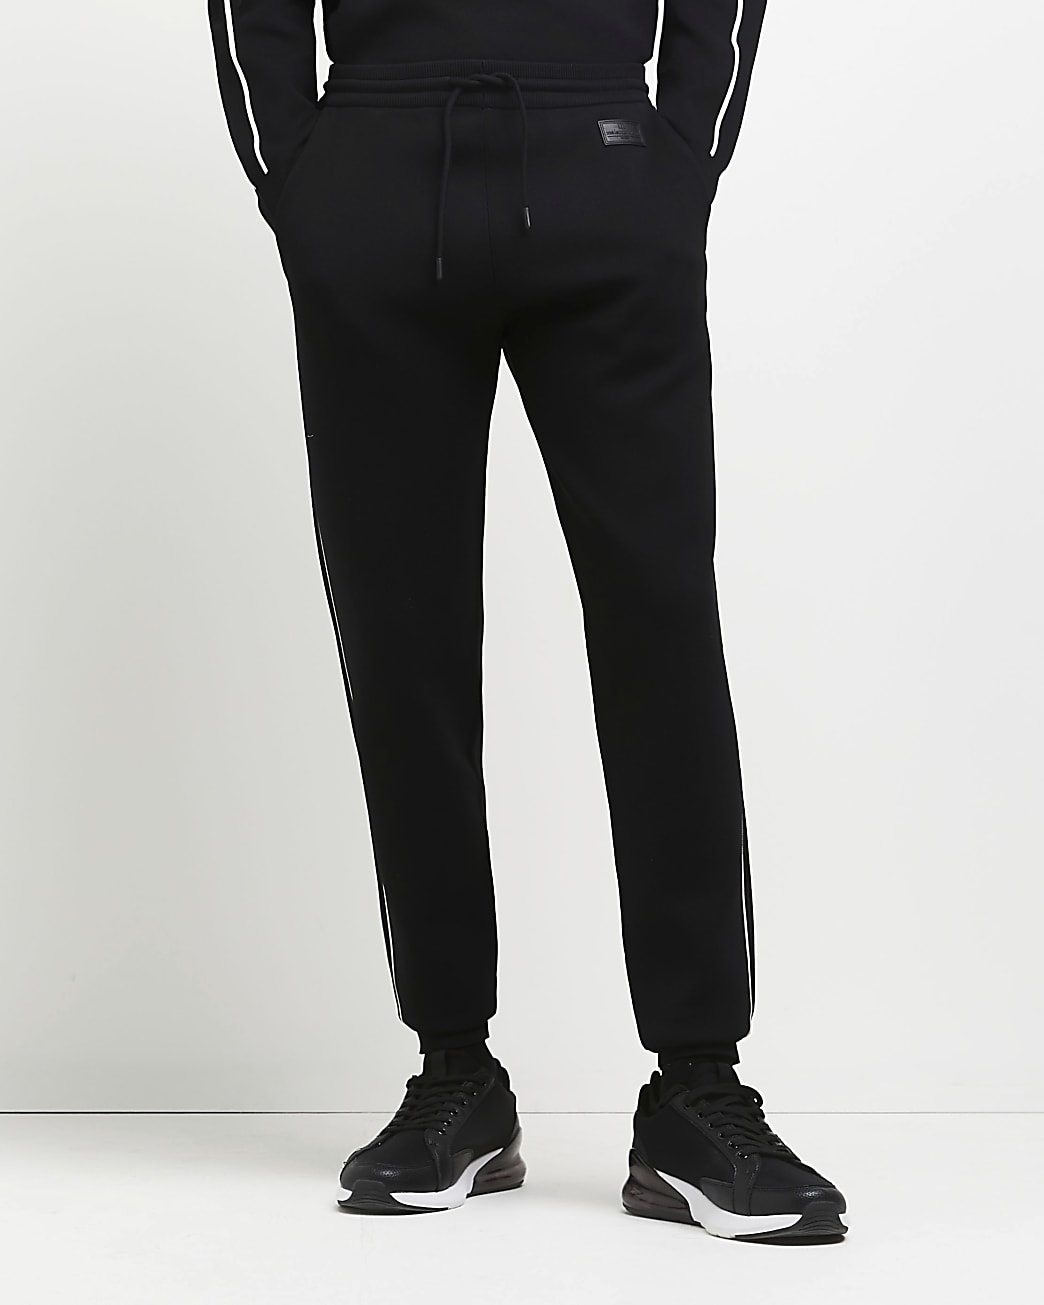 Black slim fit piping detail joggers